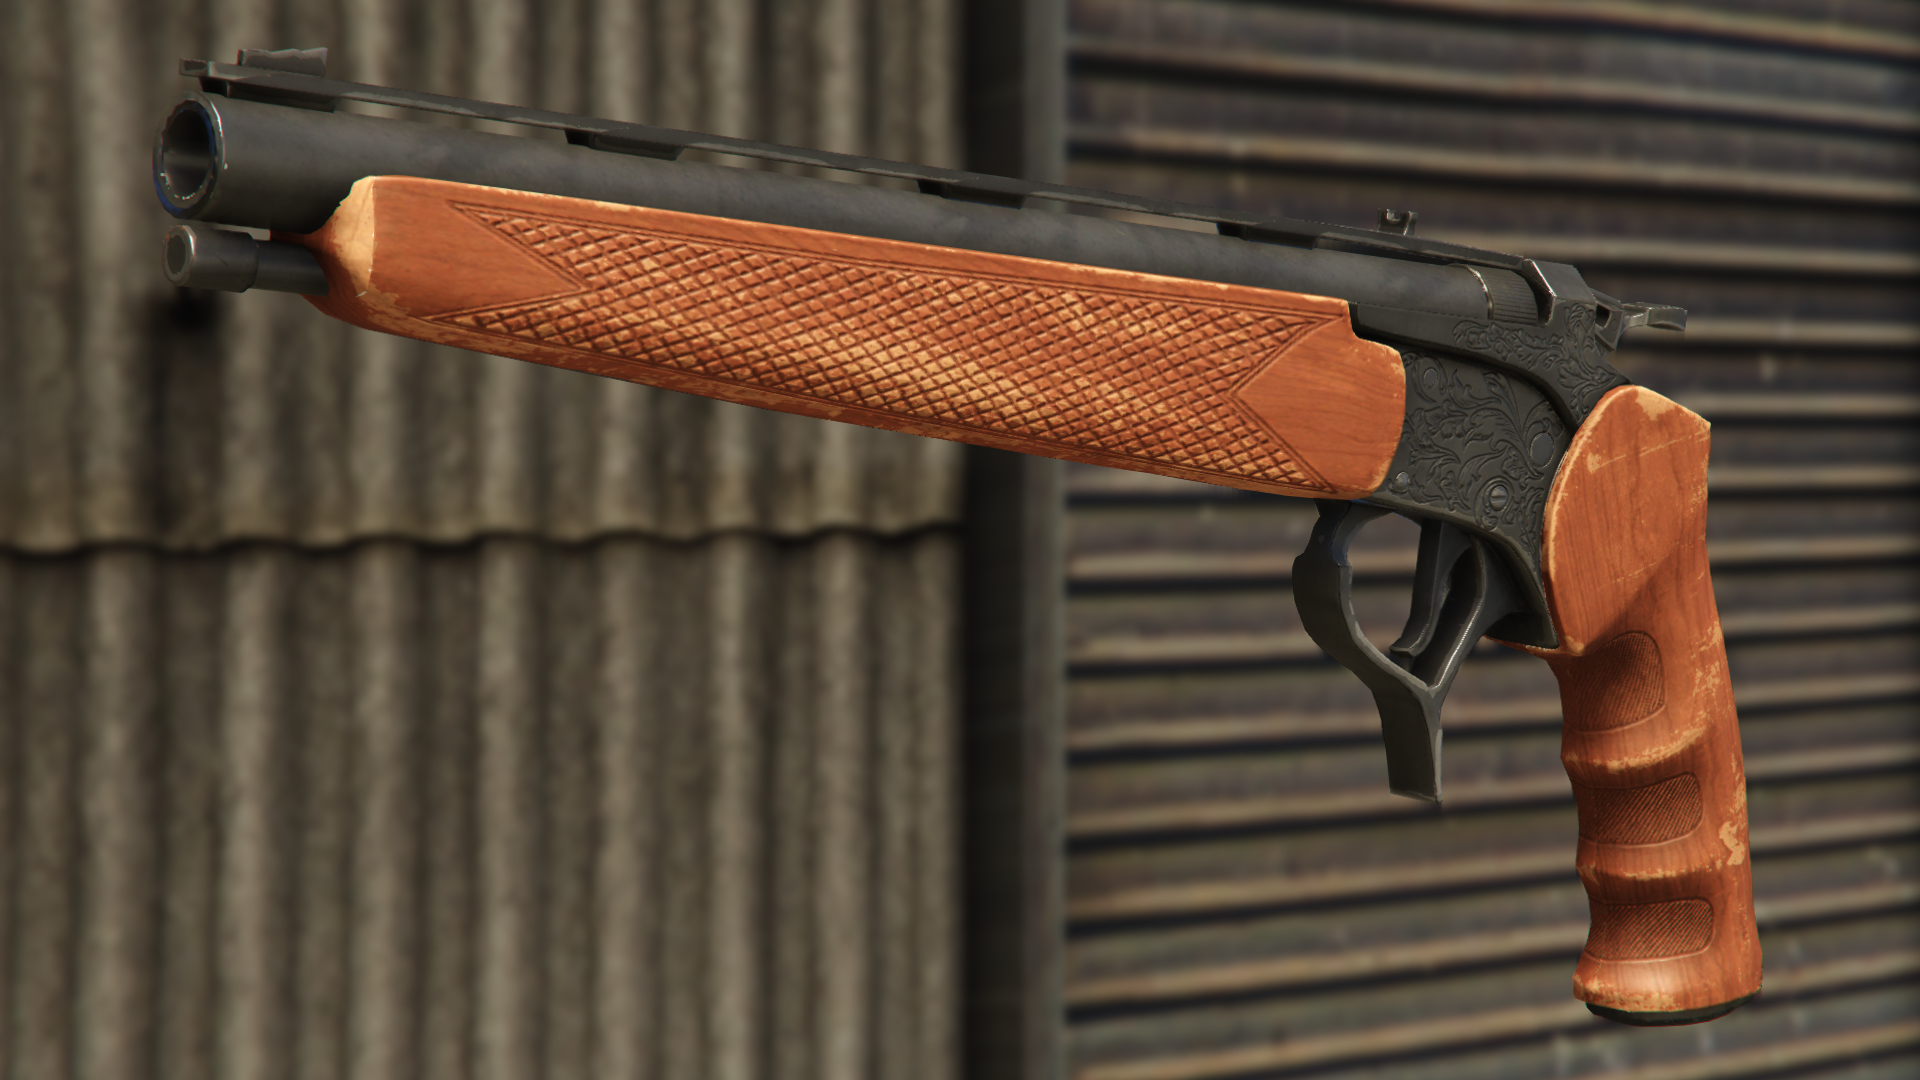 Marksman Pistol | GTA Wiki | FANDOM powered by Wikia